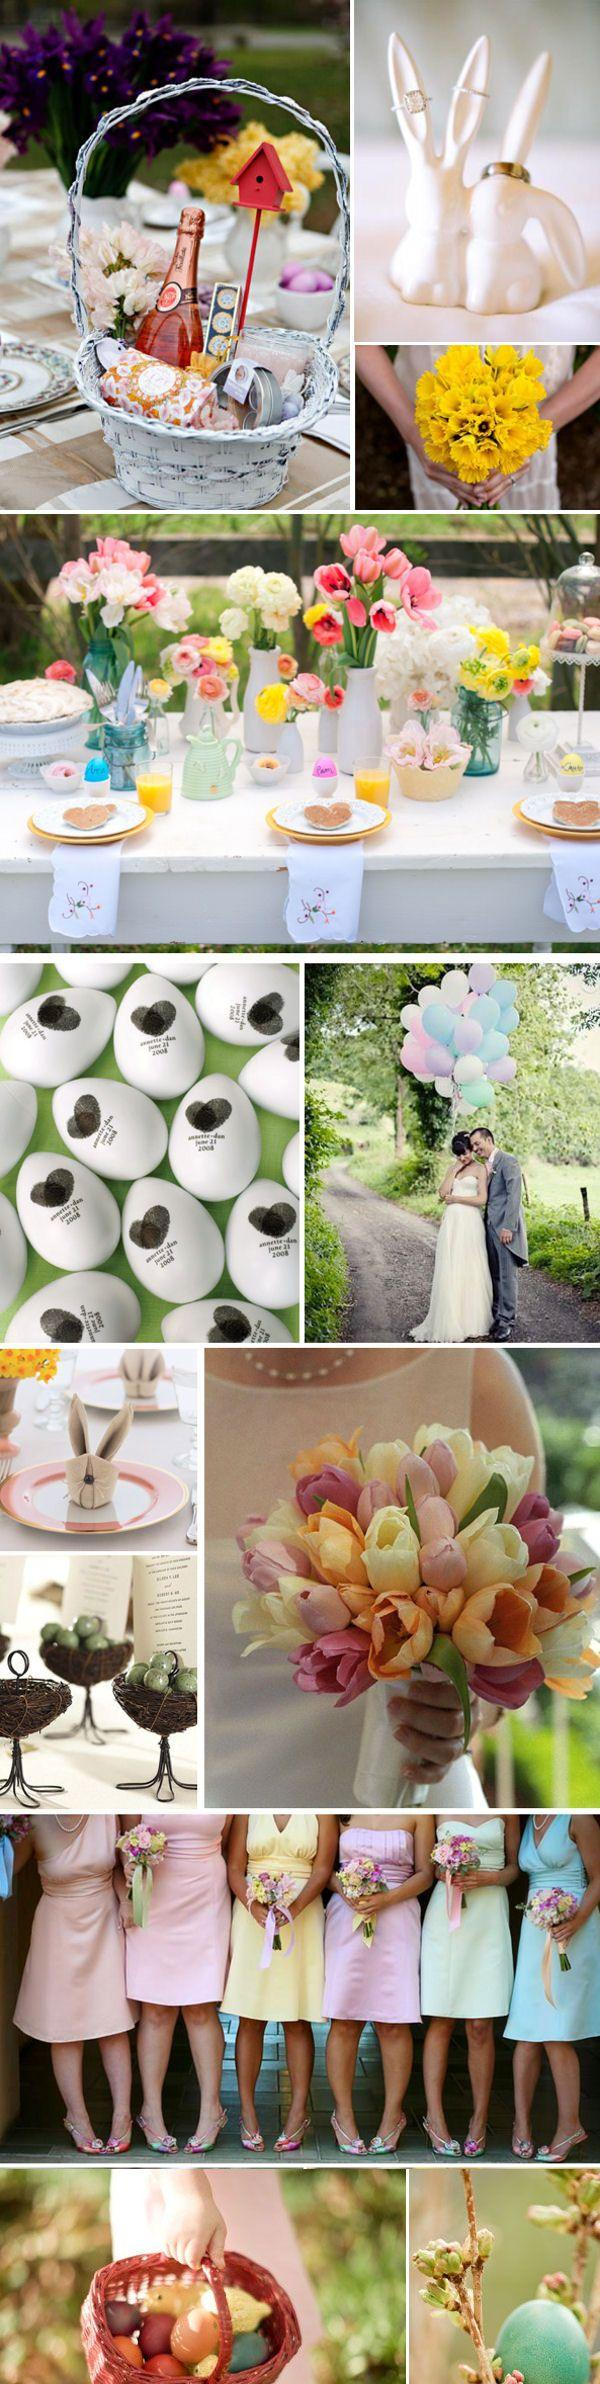 Wedding - Charming Wedding Ideas Inspired By Easter